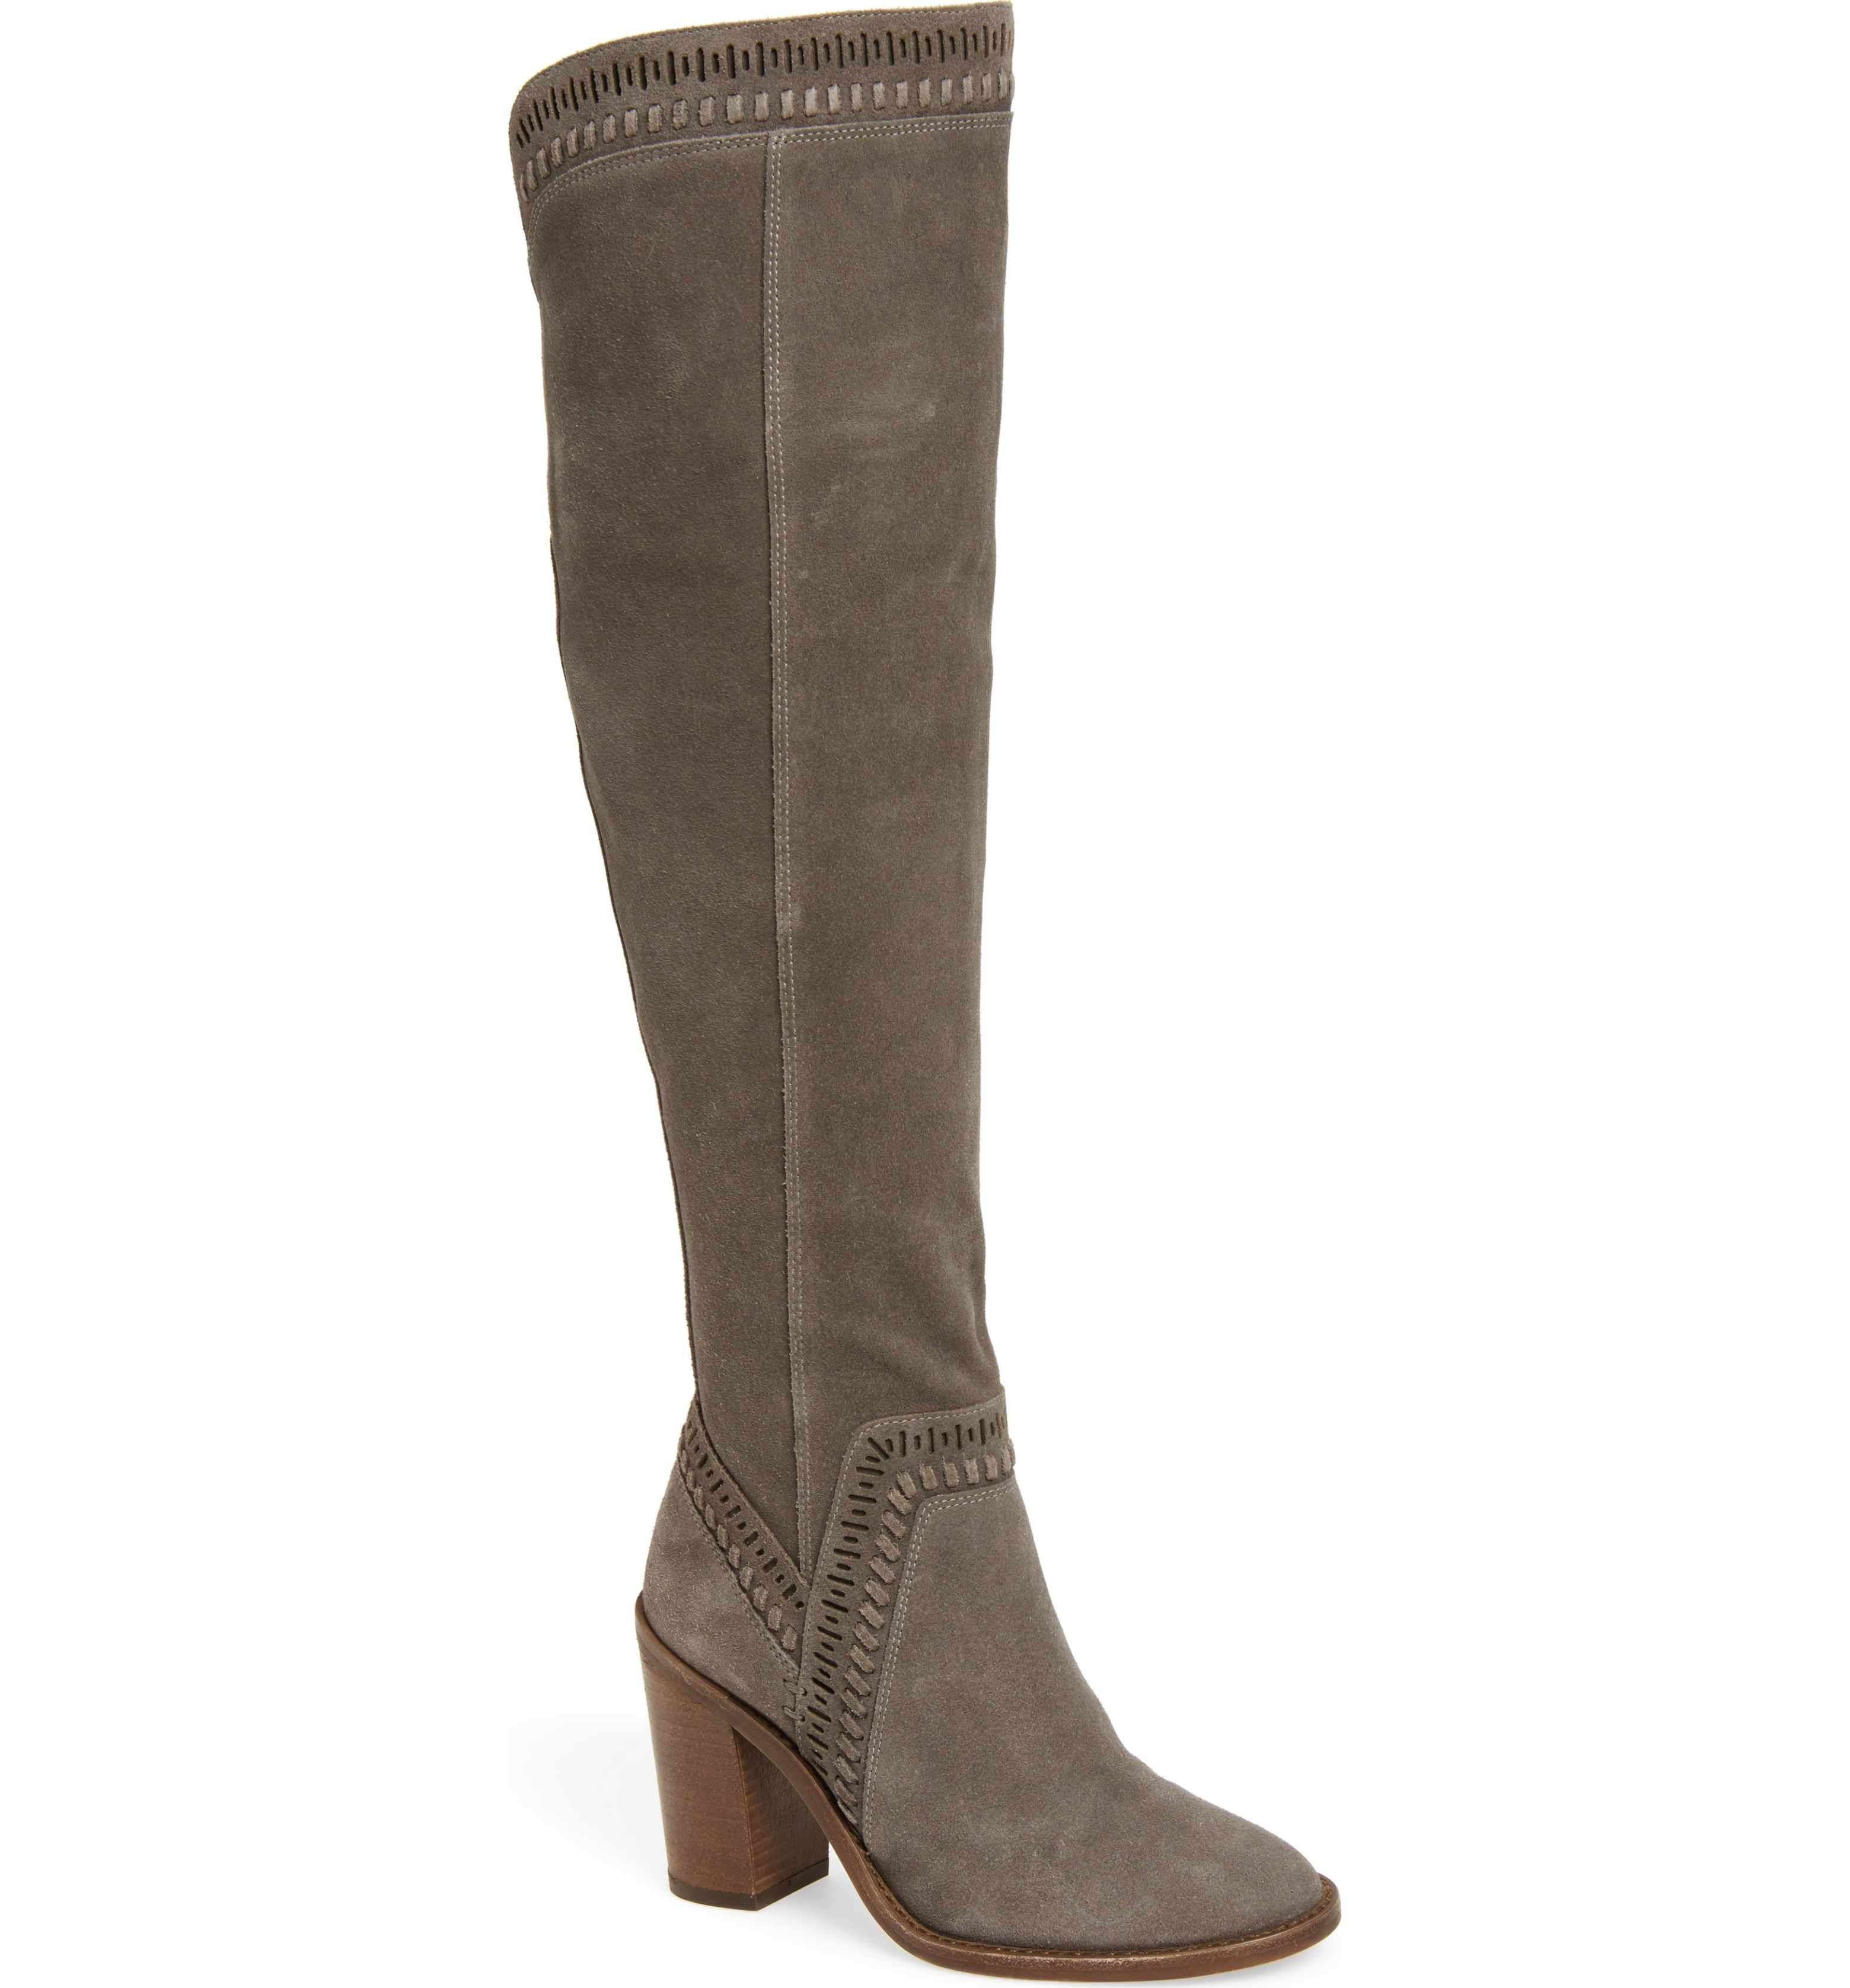 9da1e4a37bdb Main Image - Vince Camuto Madolee Over the Knee Boot (Women ...